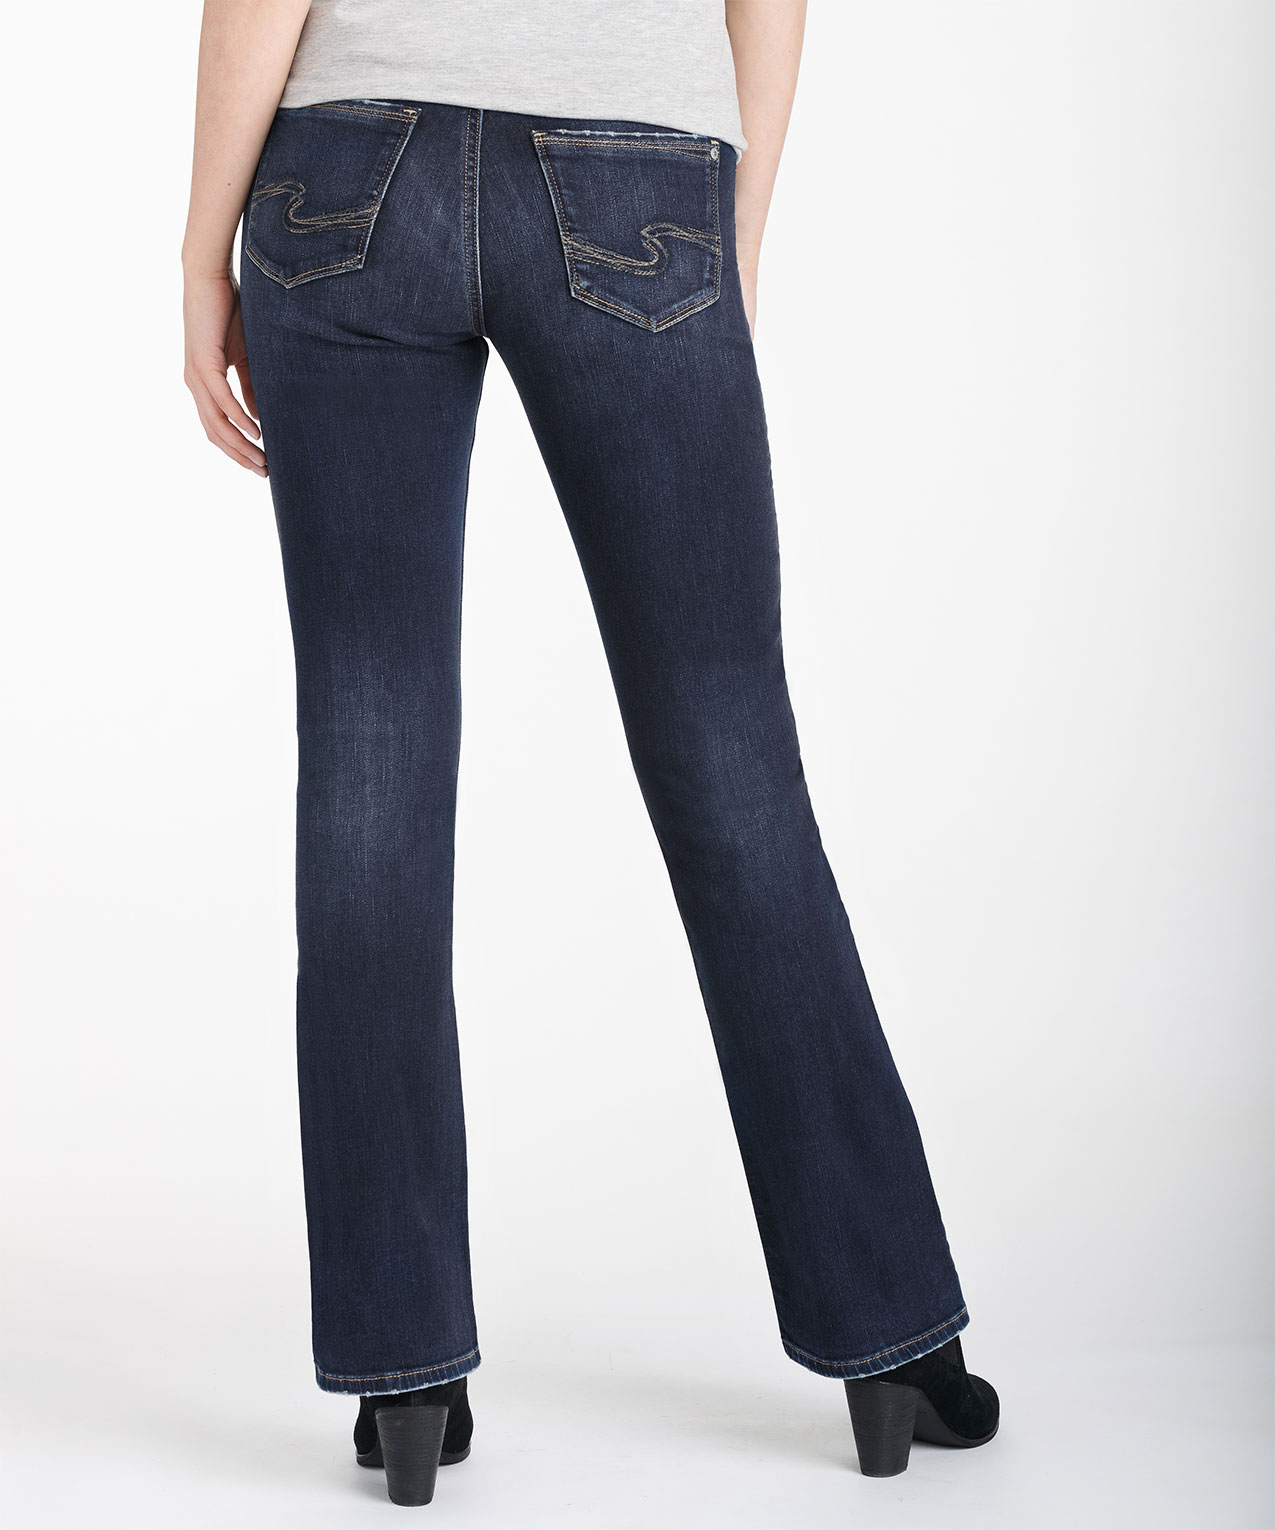 861570d6 Silver Jeans Co. Avery Slim Bootcut Jean, Dark Wash, hi-res ...